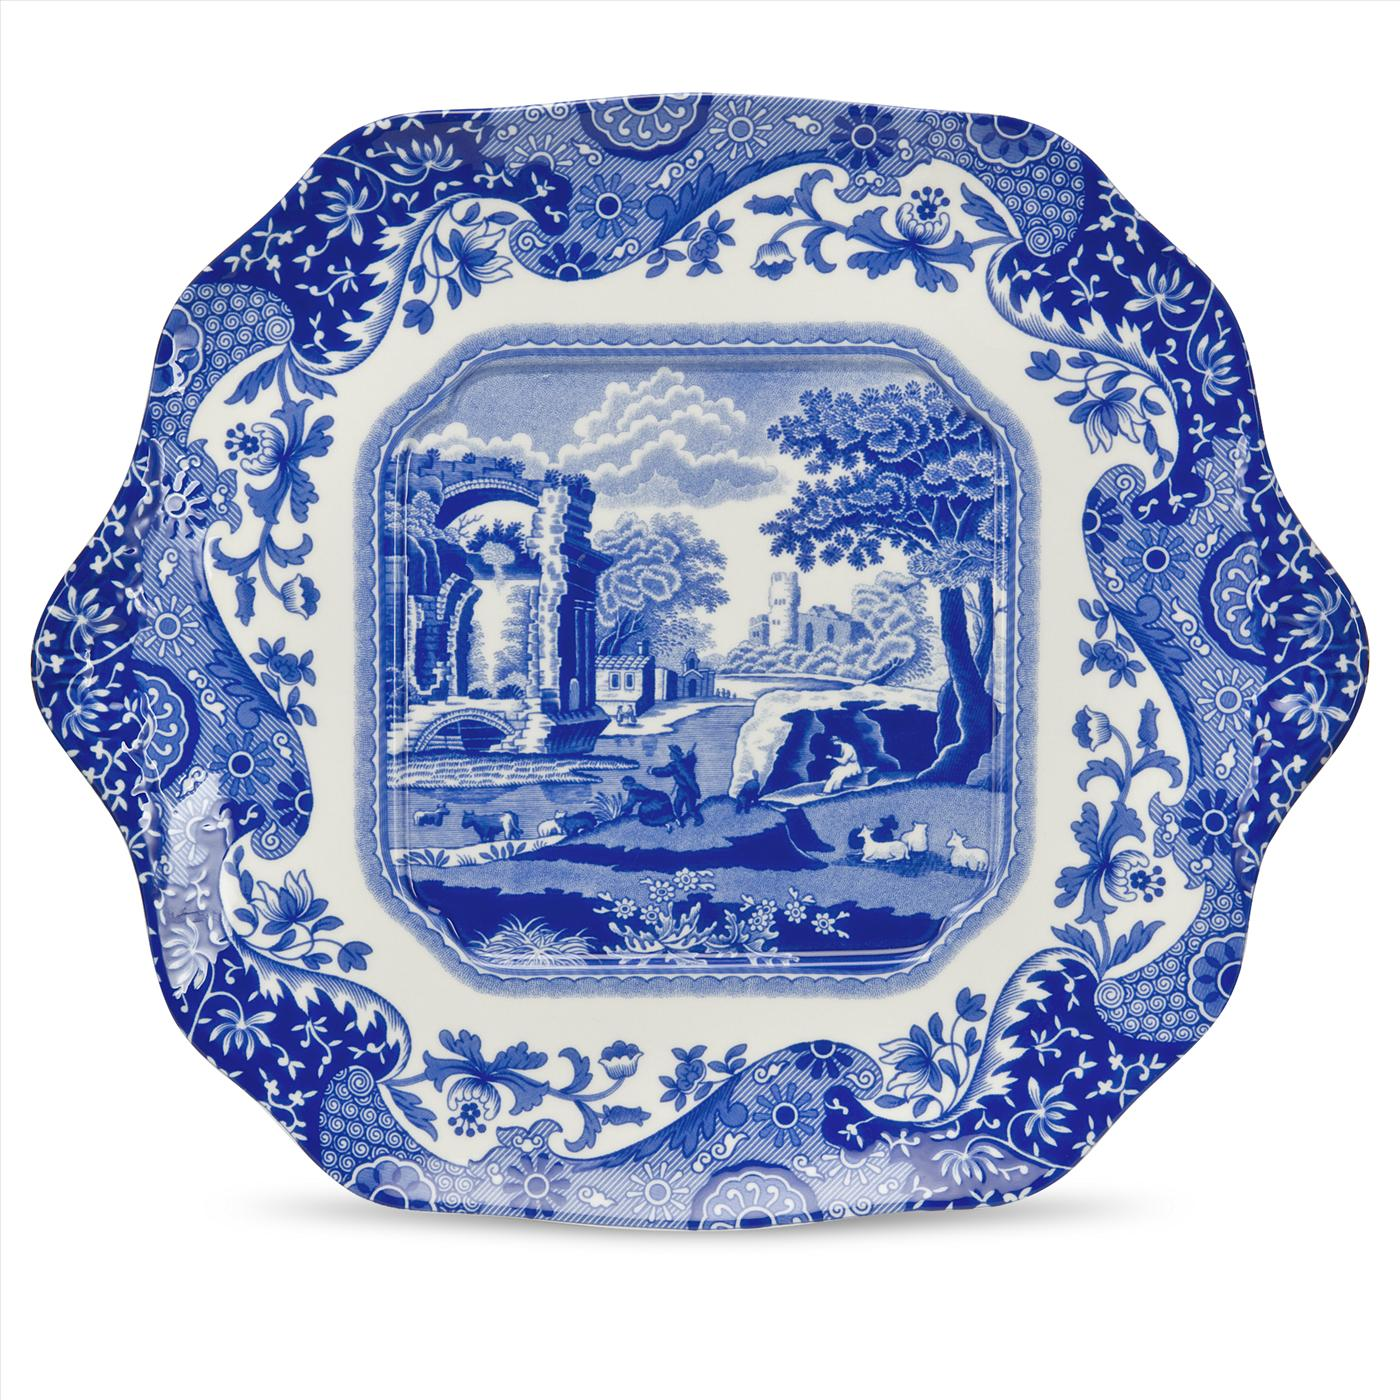 Spode Blue Italian English Bread and Butter Plates image number 0